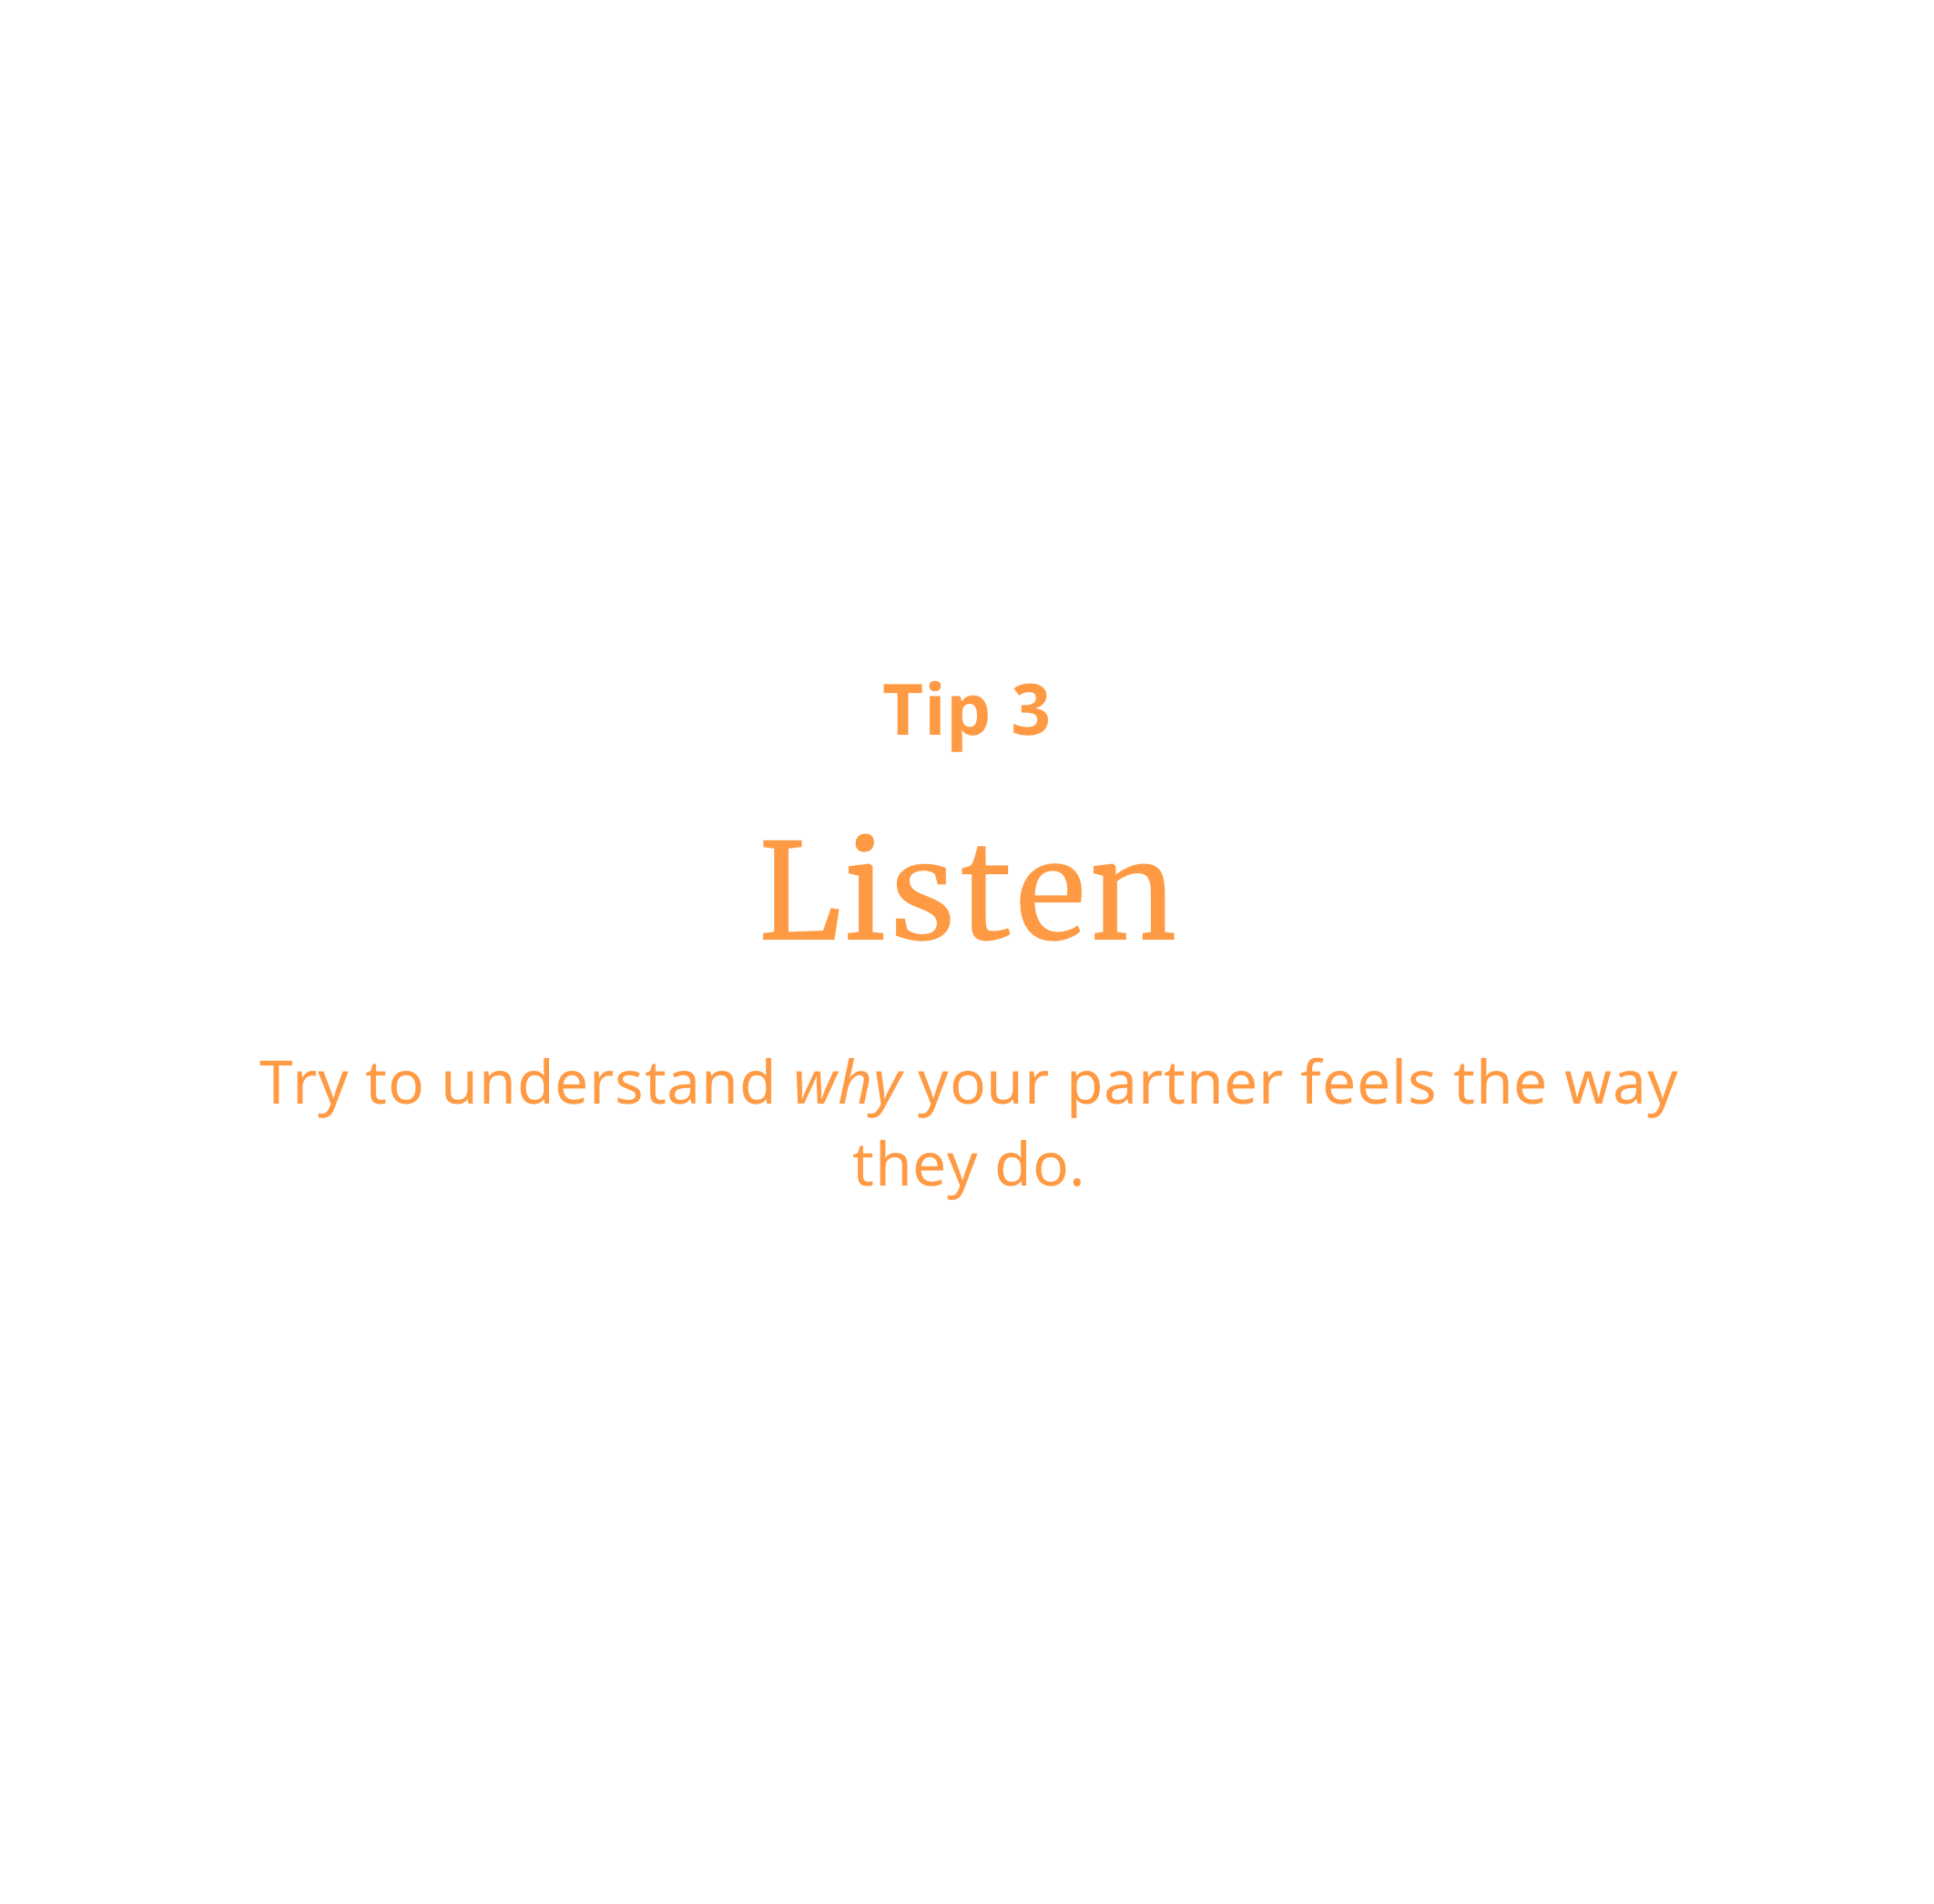 TIp 3@3x.png